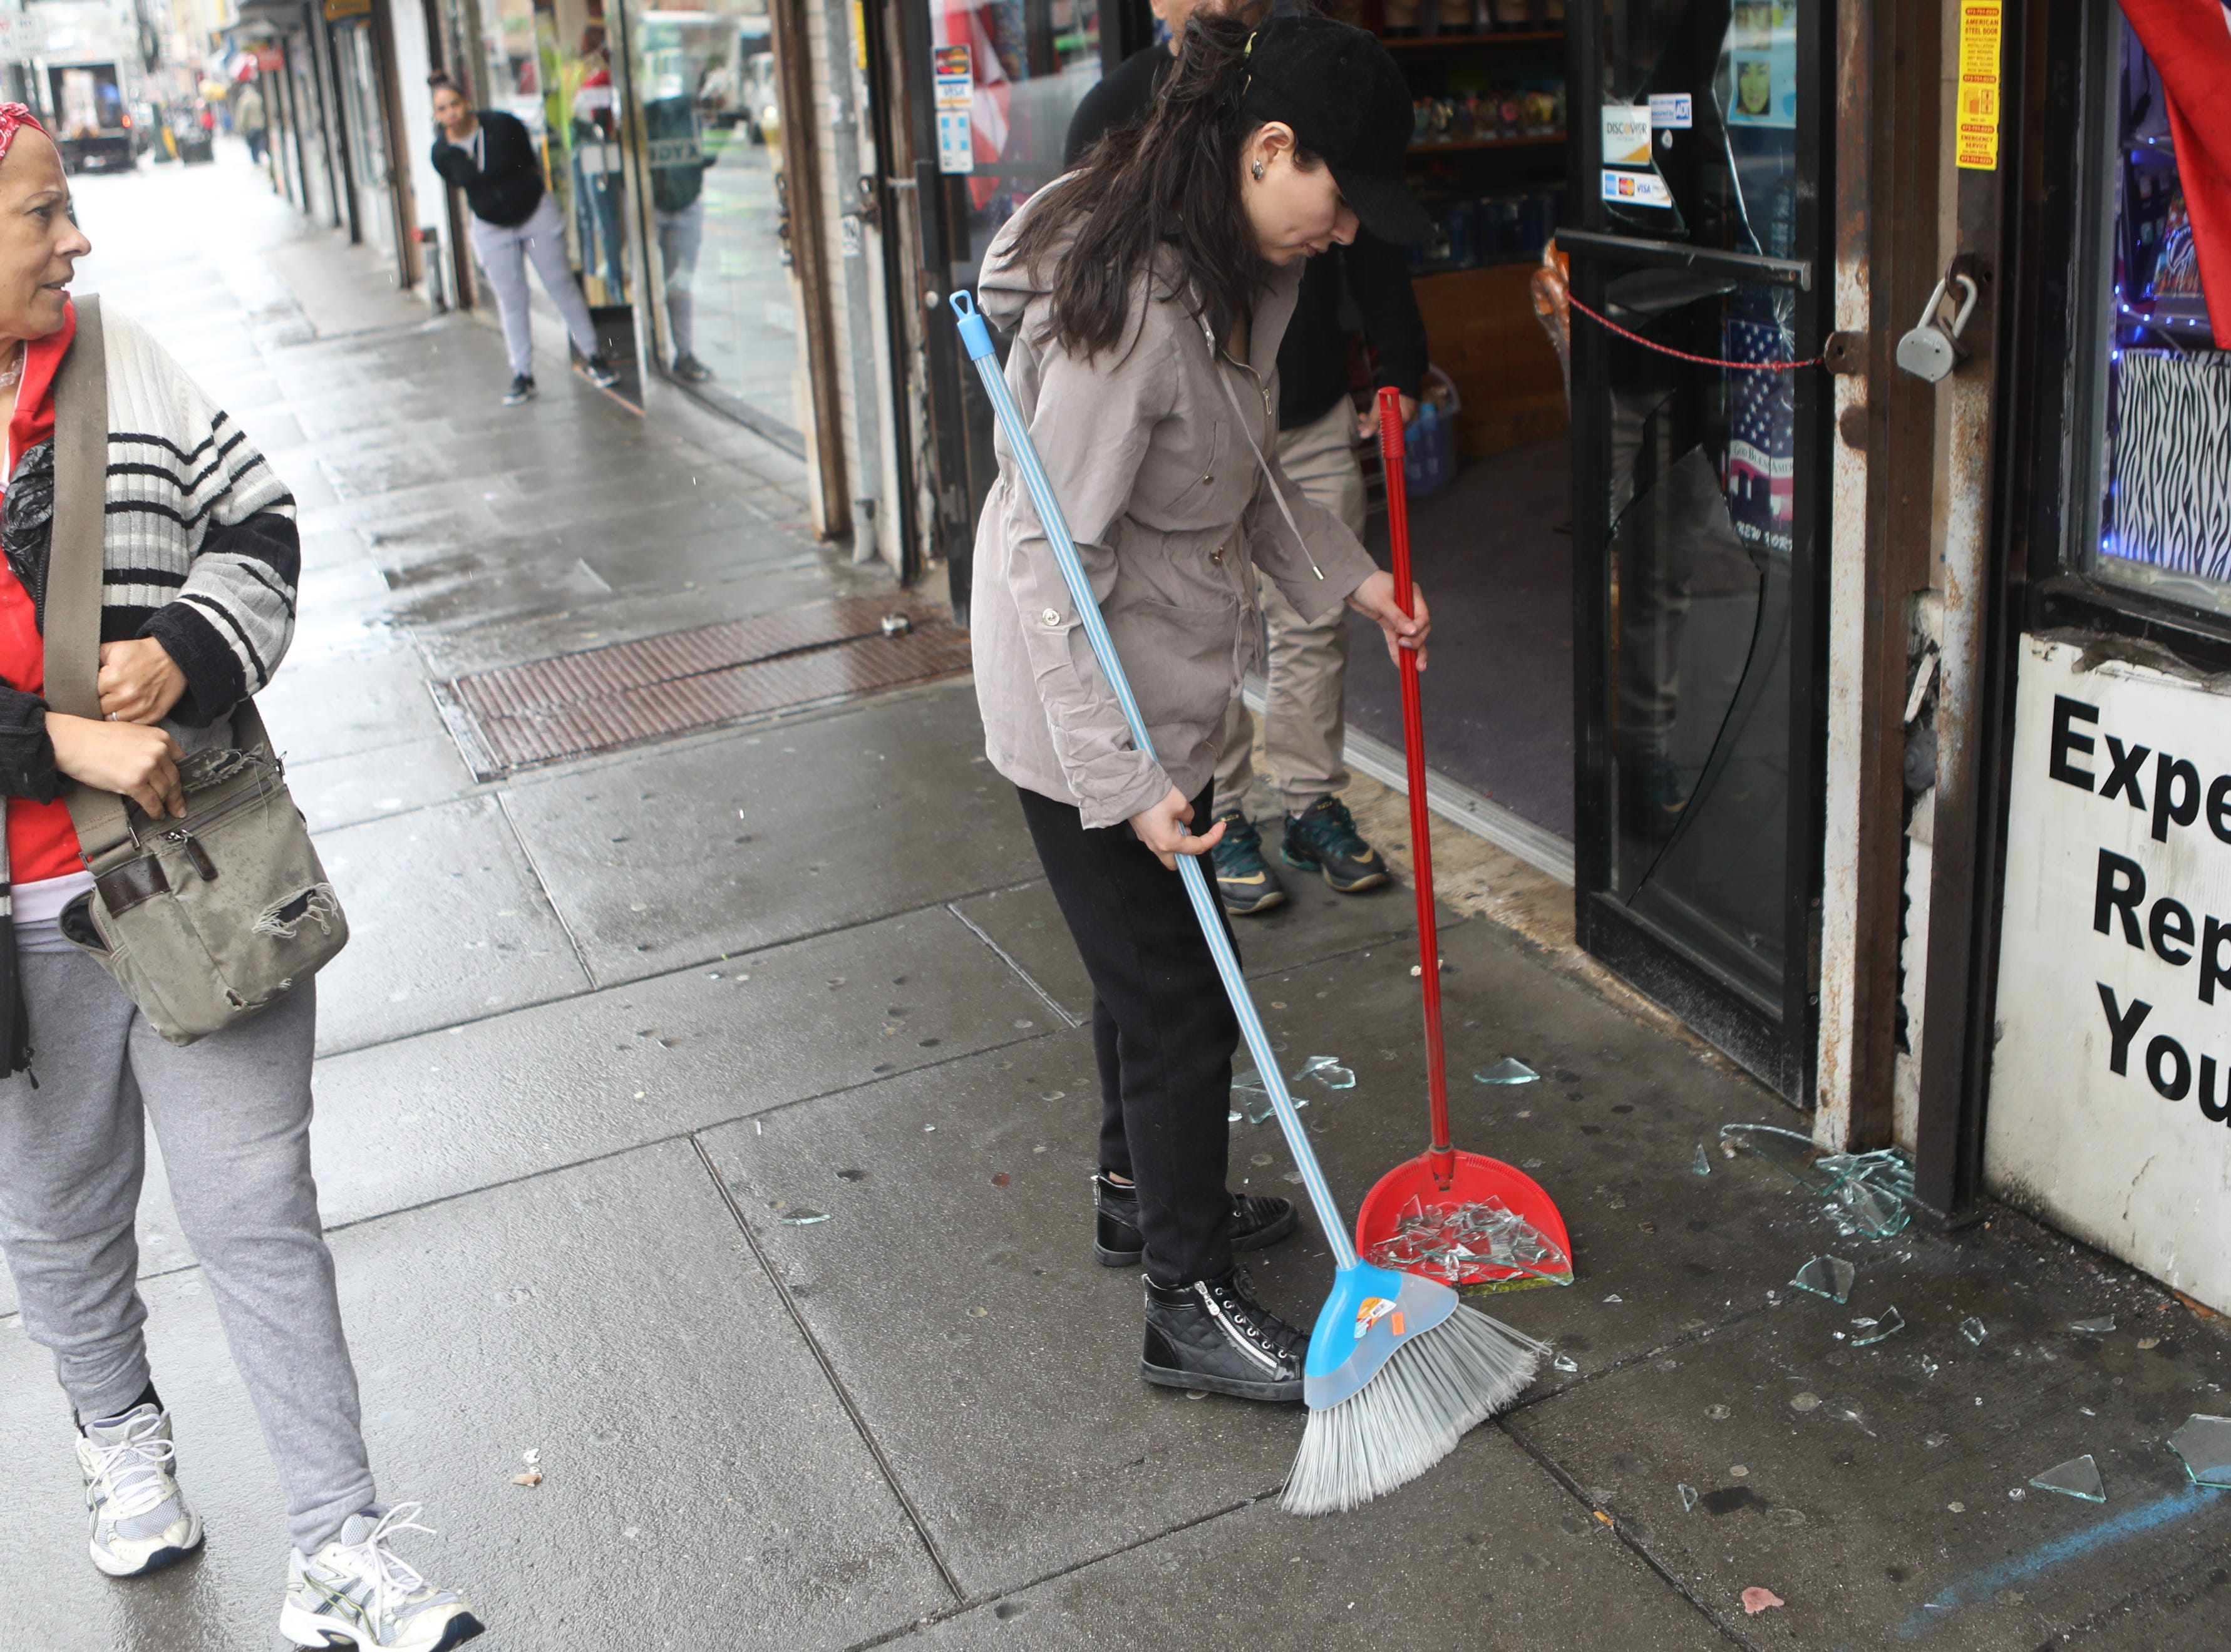 A woman sweeps glass off the sidewalk after the power of the wind blew a glass door open at City Fashion, on Main St. in Paterson. Monday, April, 15, 2019